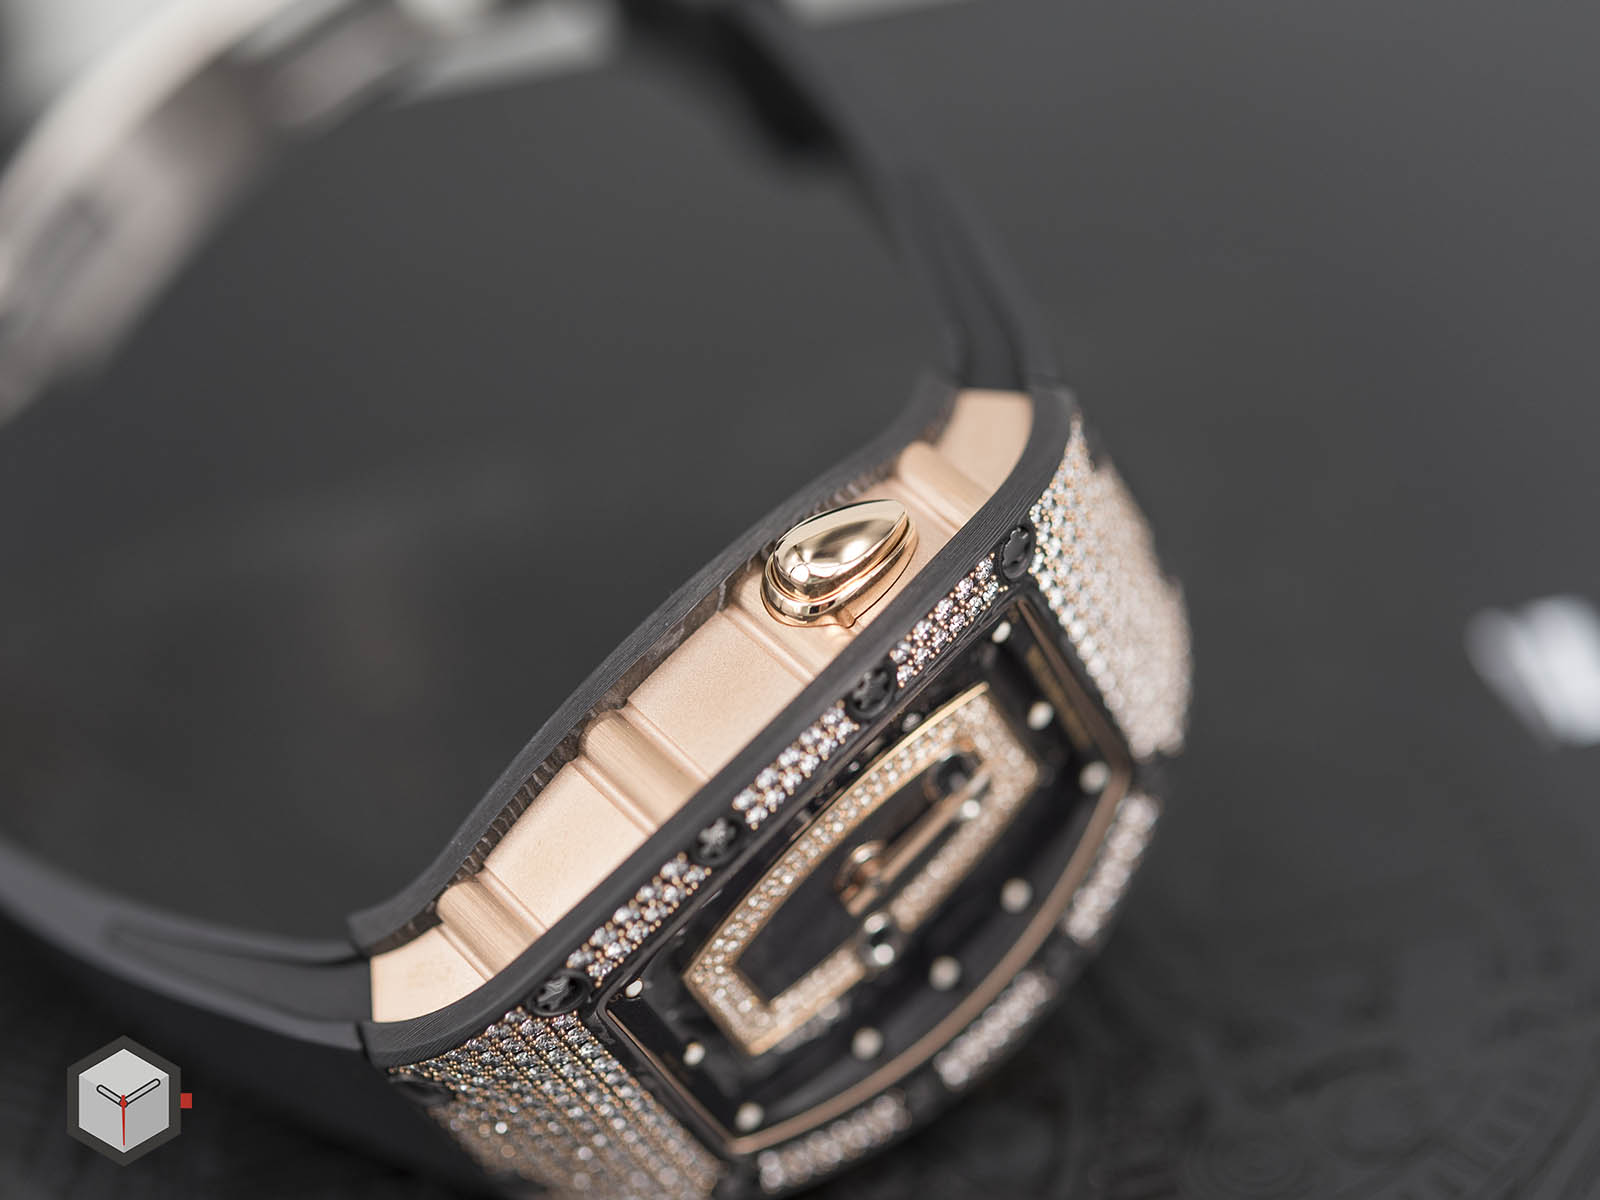 richard-mille-rm-037-automatic-7.jpg